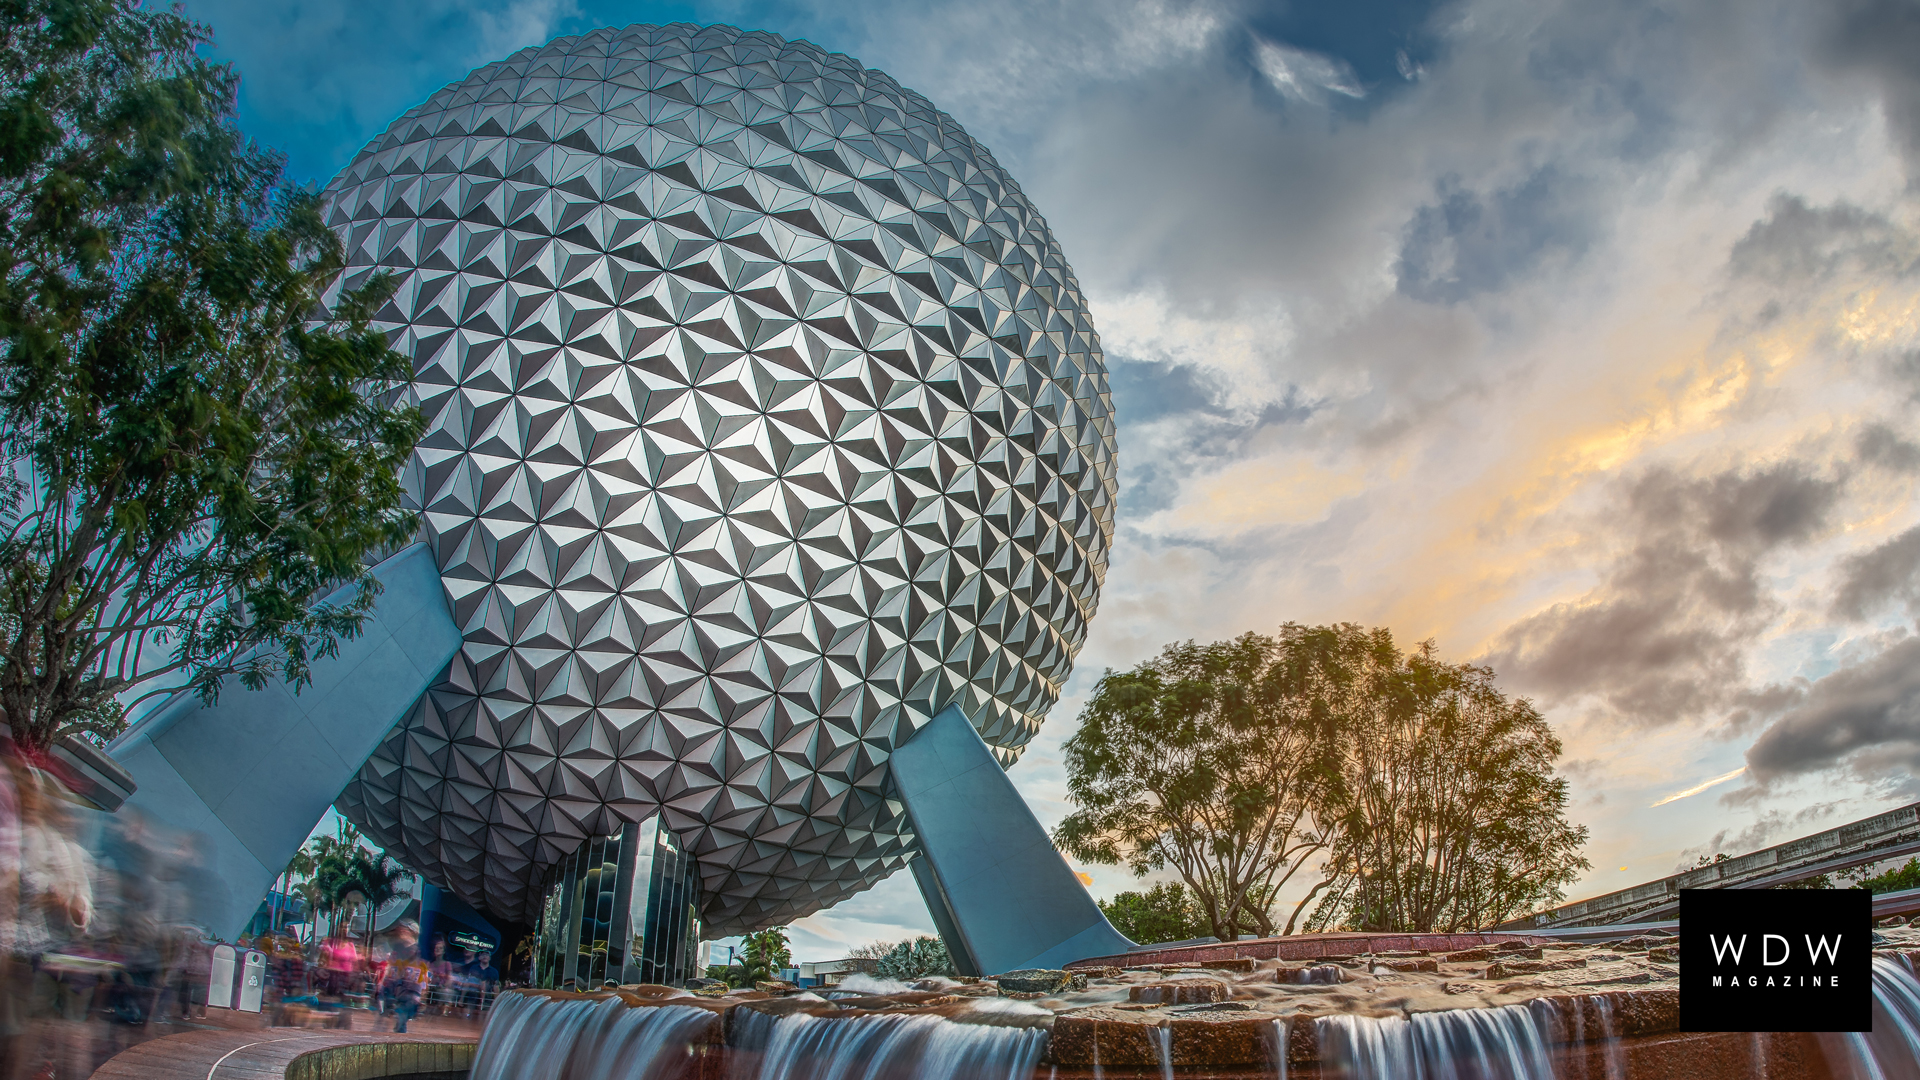 download these disney world zoom backgrounds wdw magazine these disney world zoom backgrounds